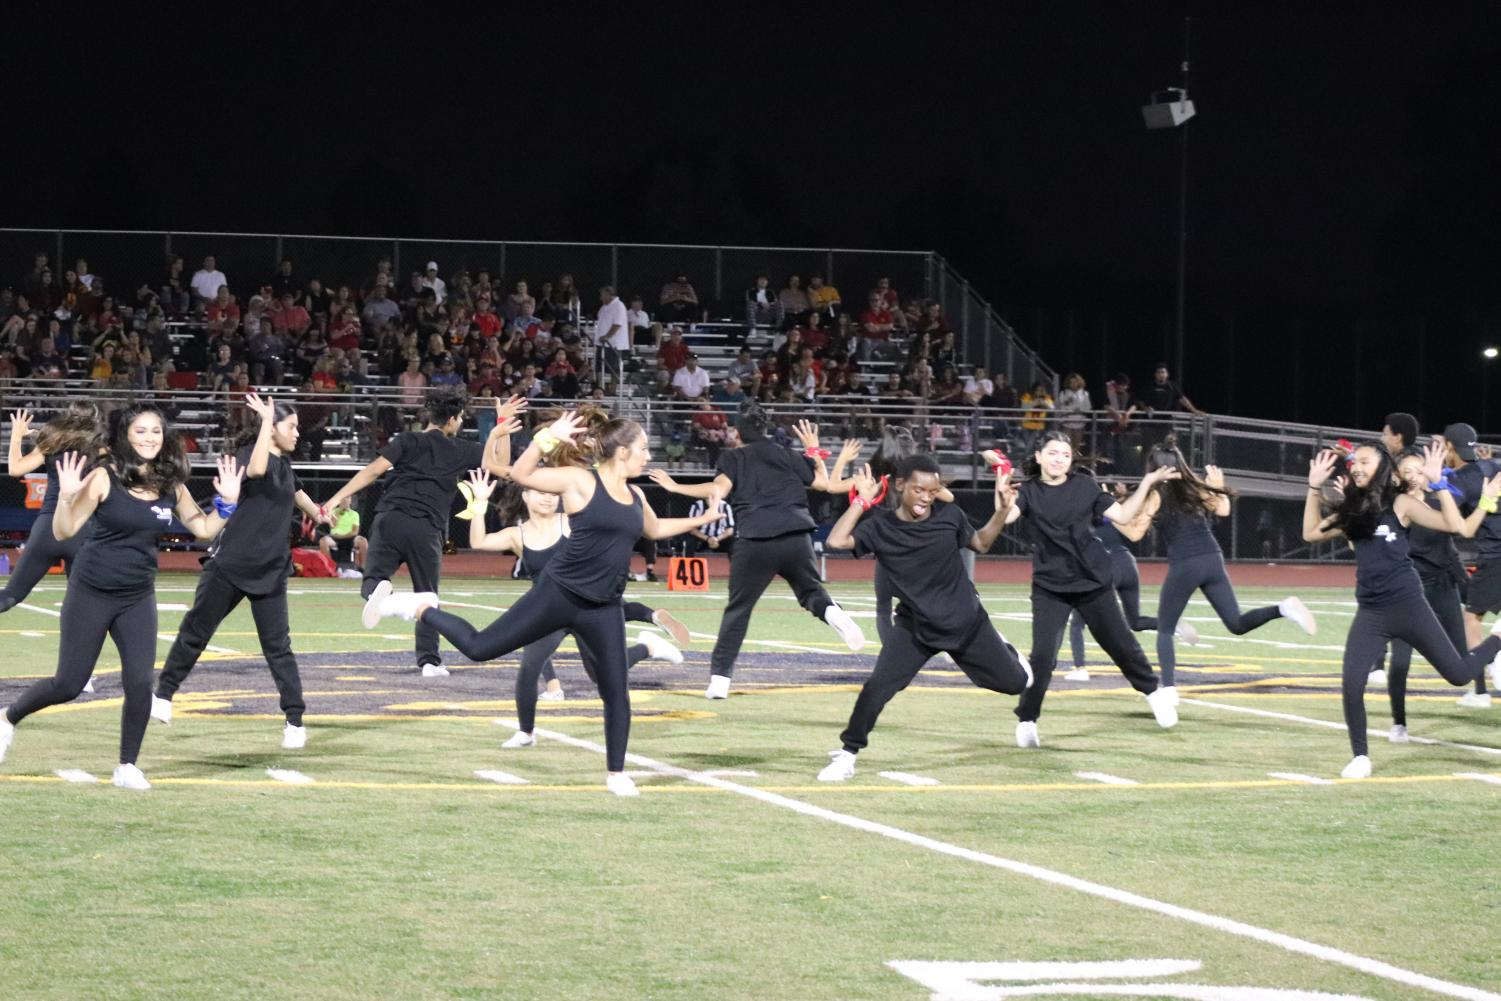 Dancers surprising the audience with their jumps. The Lincoln Convertibles and Lincoln Performance Company were dancing halftime with special guest: Willow Glen High School. September 13, 2019 at the Lincoln Football Field (Emilia Kendrick/Lion Tales)